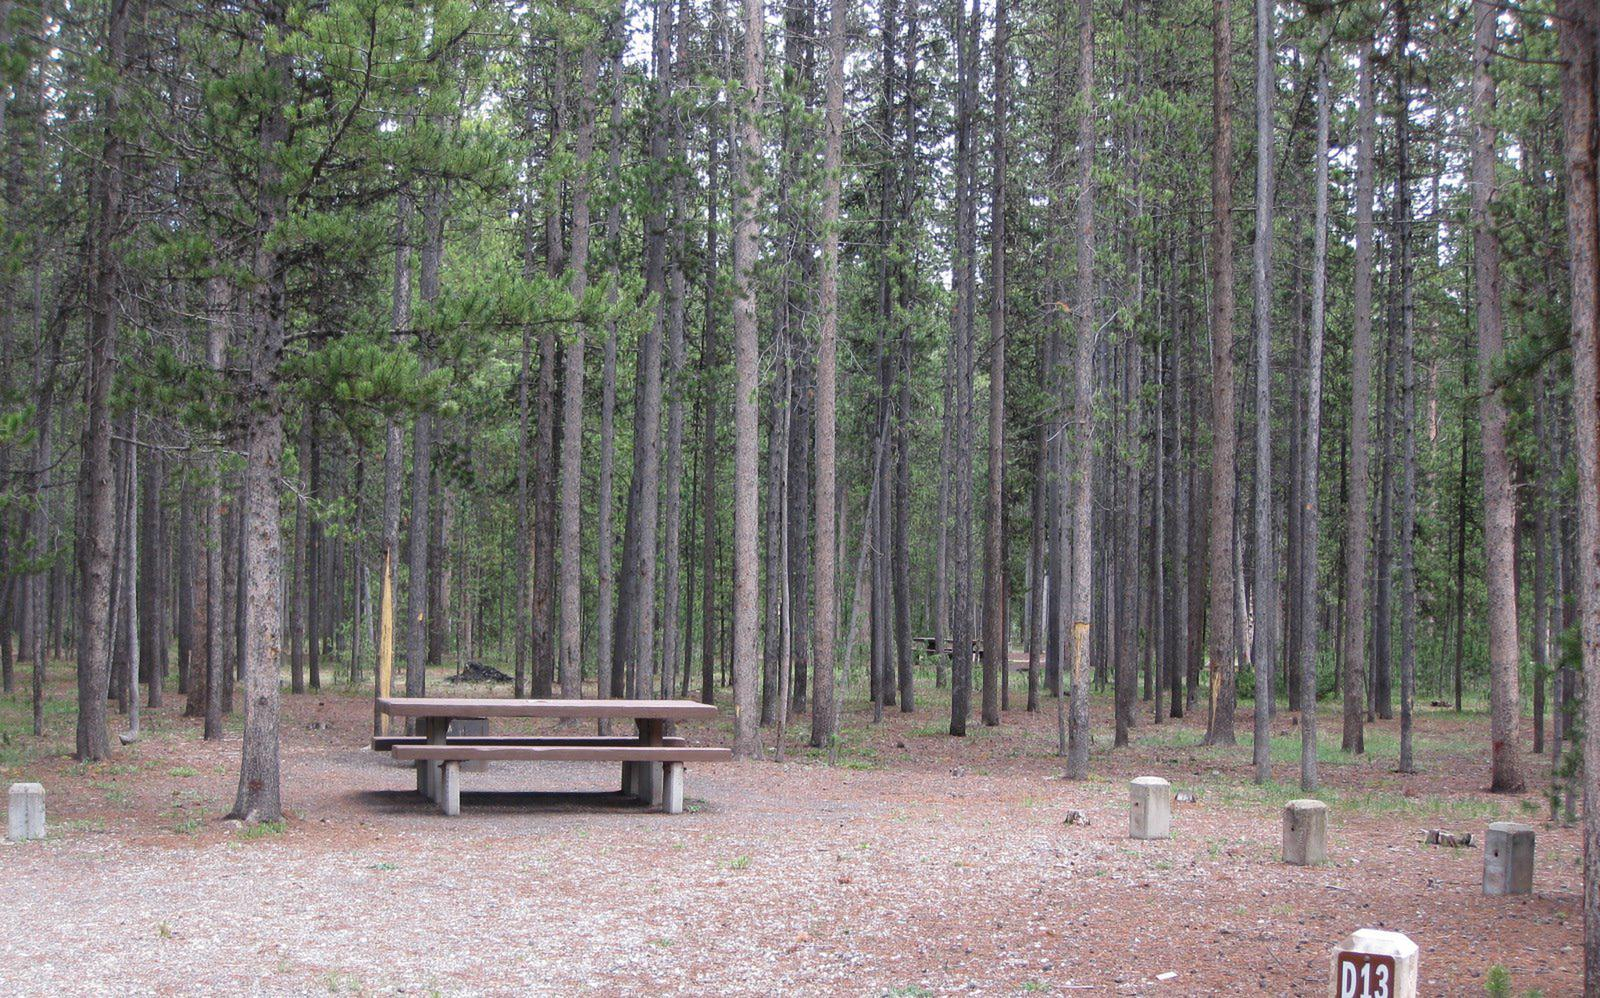 Site D13, surrounded by pine trees, picnic table & fire ringSite D13